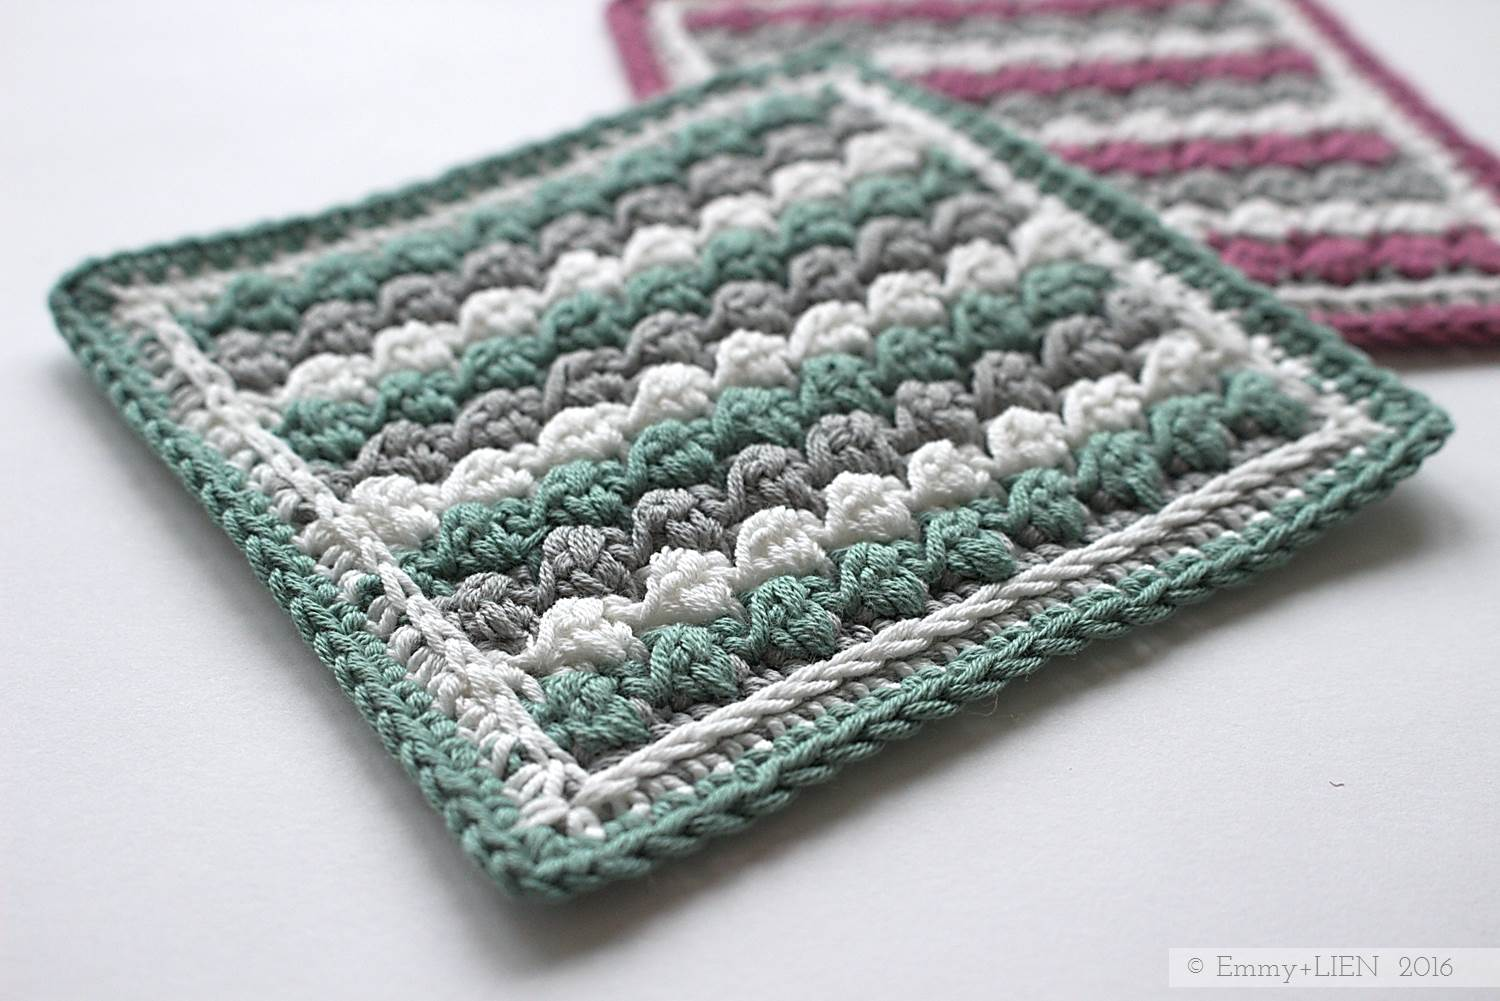 Raspberry Ripple Sampler Square | Free Uneven Berry crochet stitch tutorial and granny square pattern by Emmy + LIEN